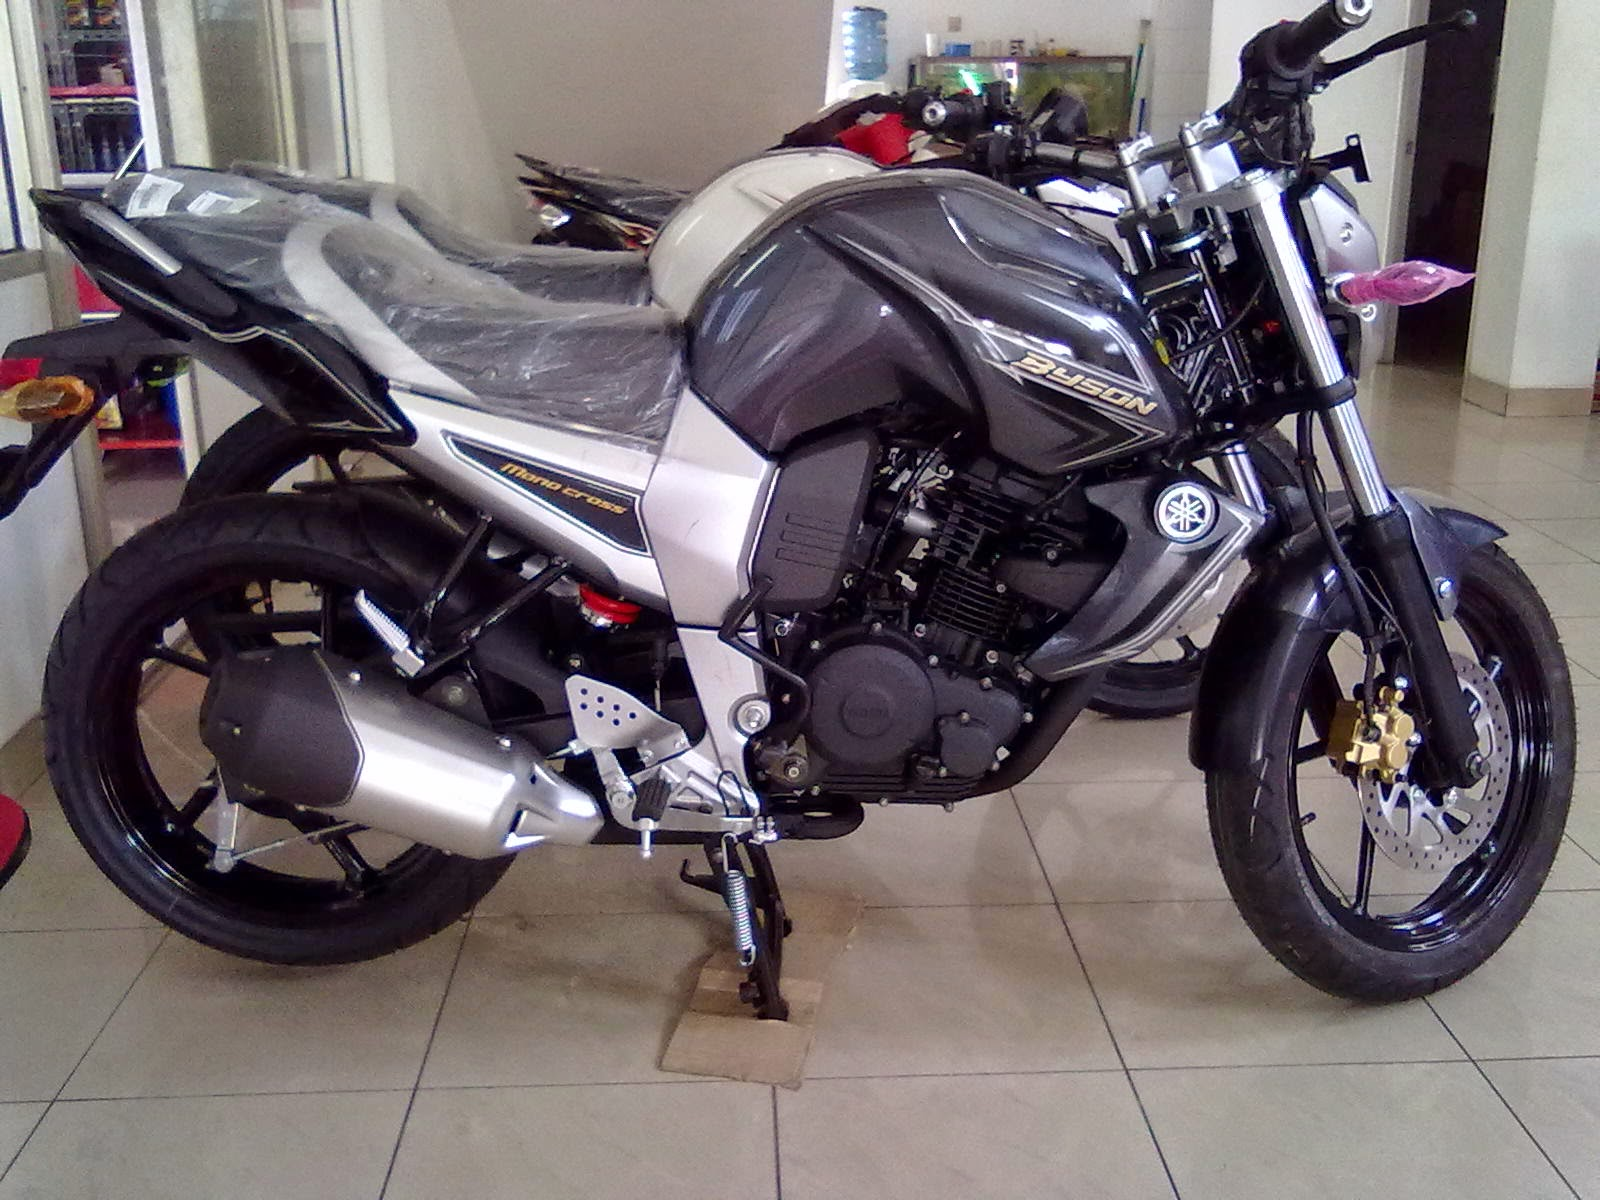 Modifikasi Supra X 125 Warna Hitam